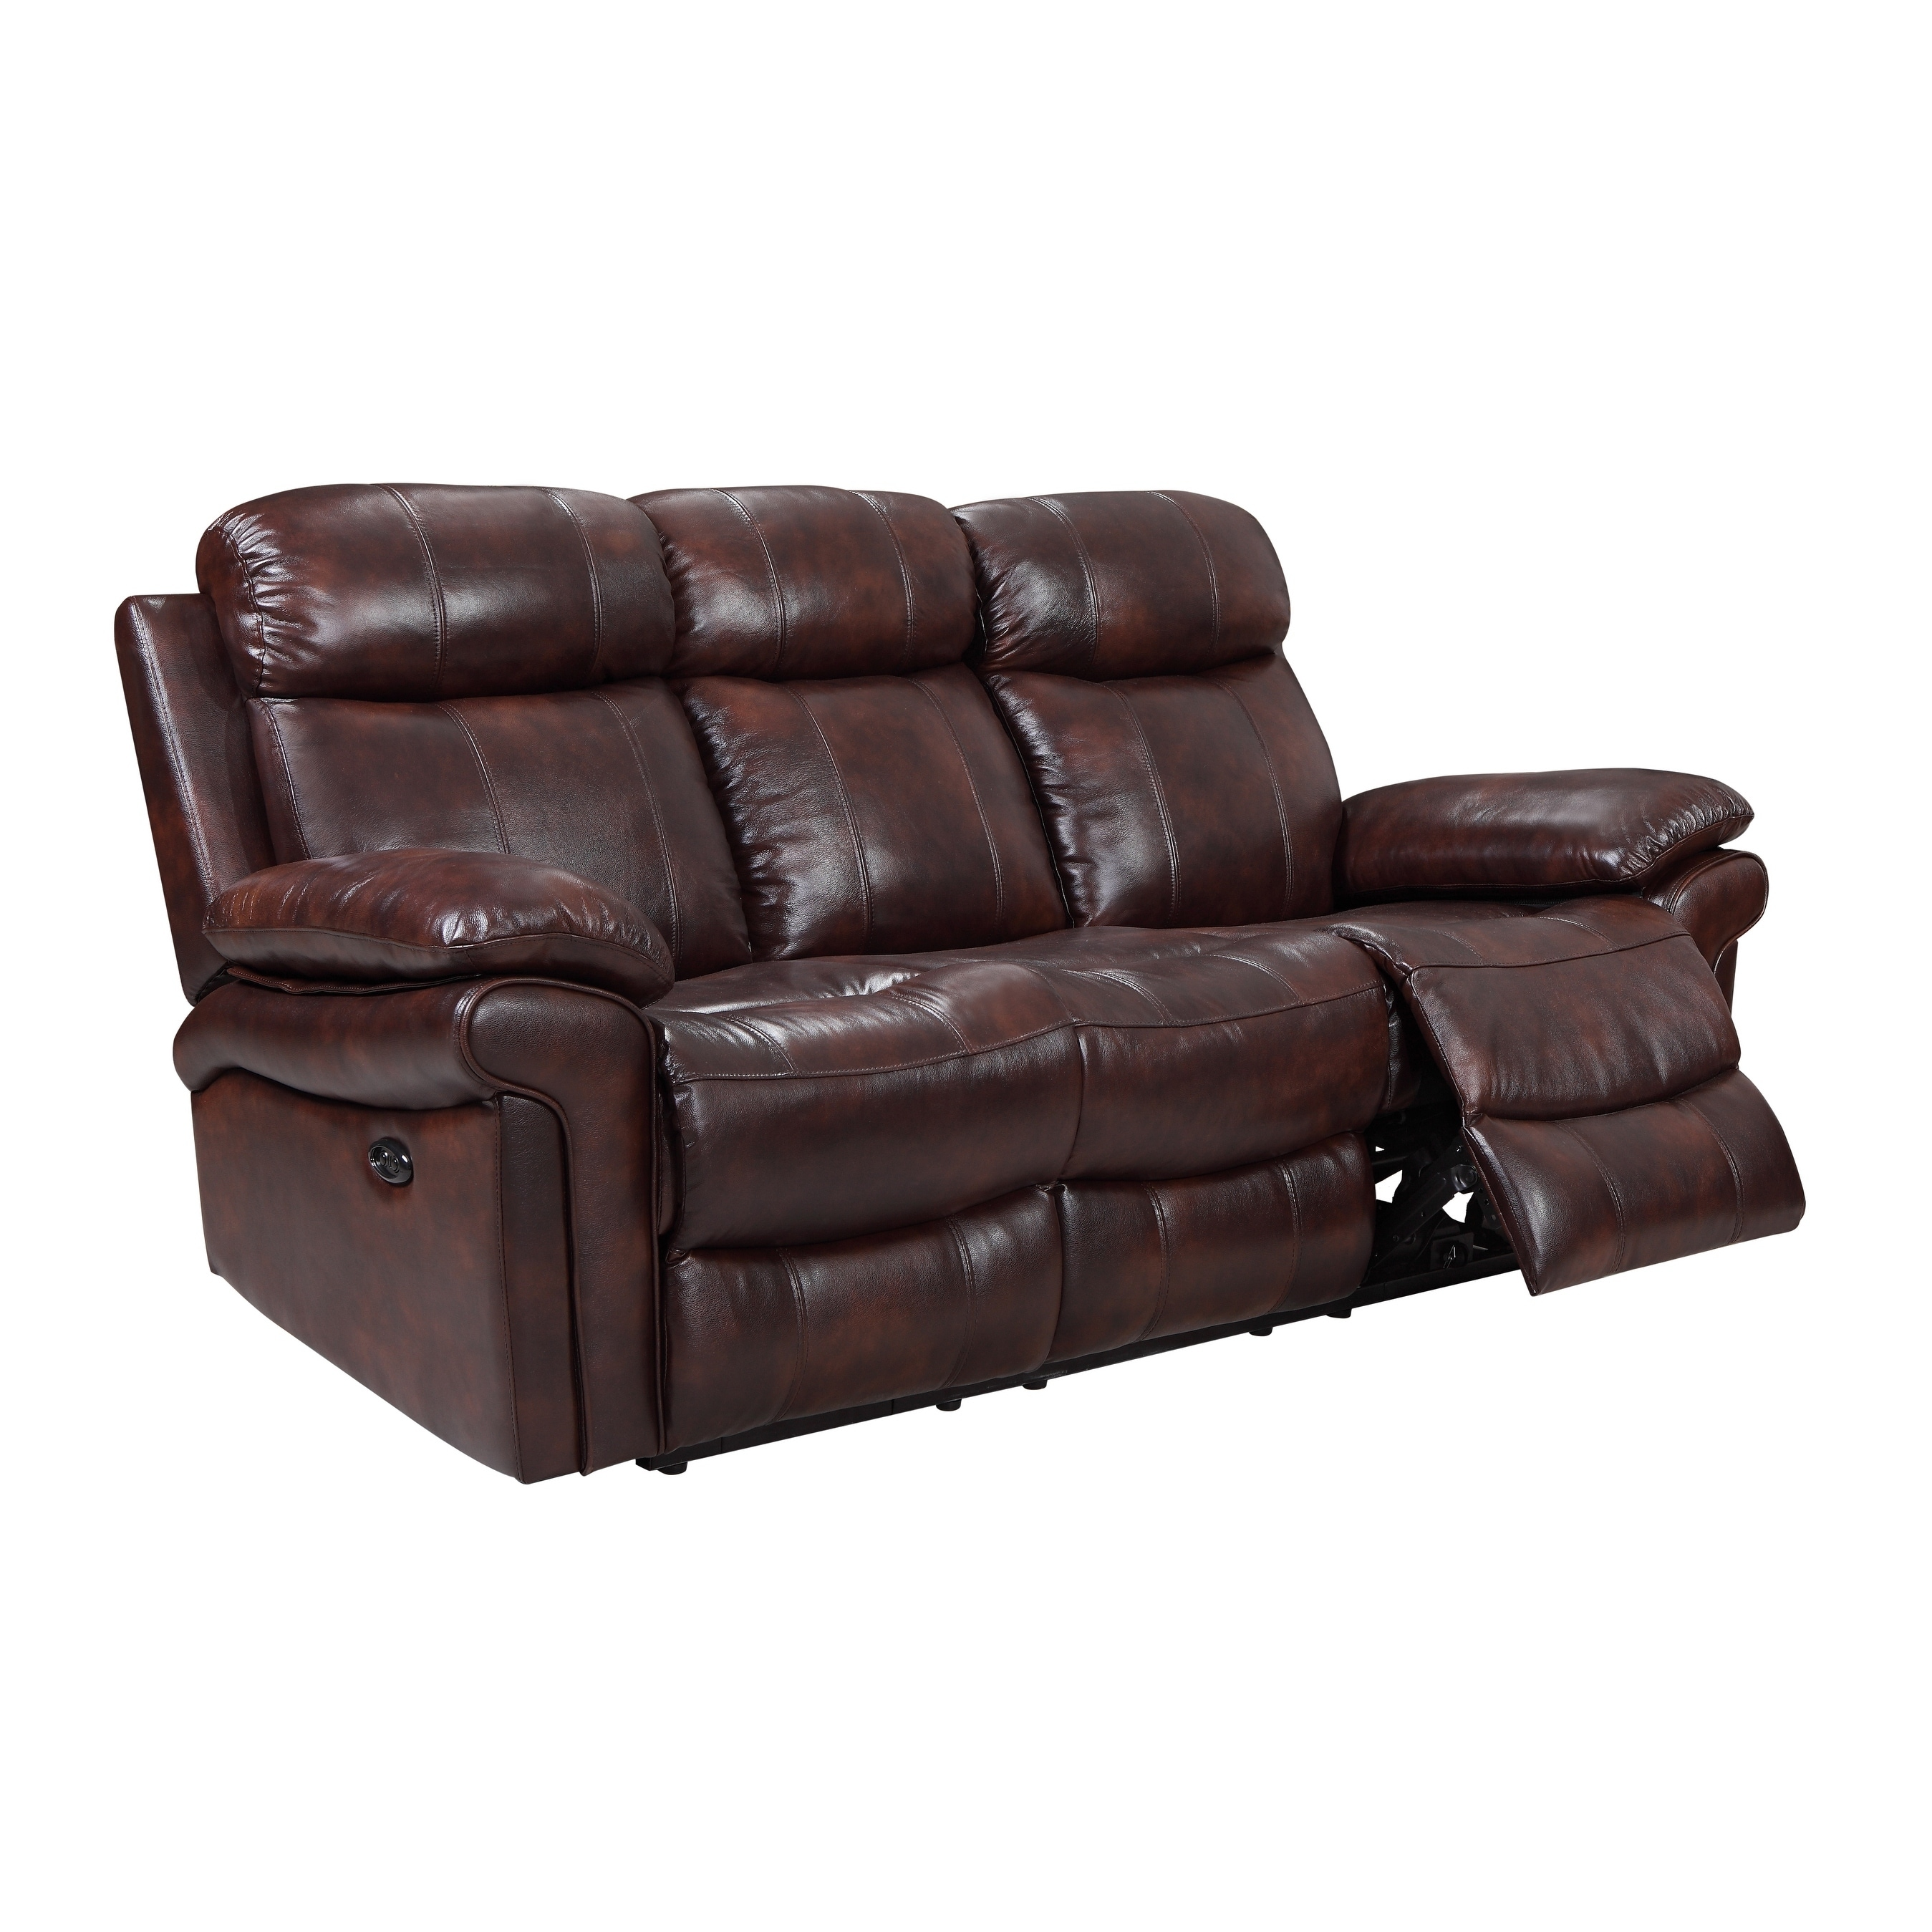 Hudson Sofa Collection Reviews Hudson Power Reclining Top Grain Leather Sofa Brown Blue Red